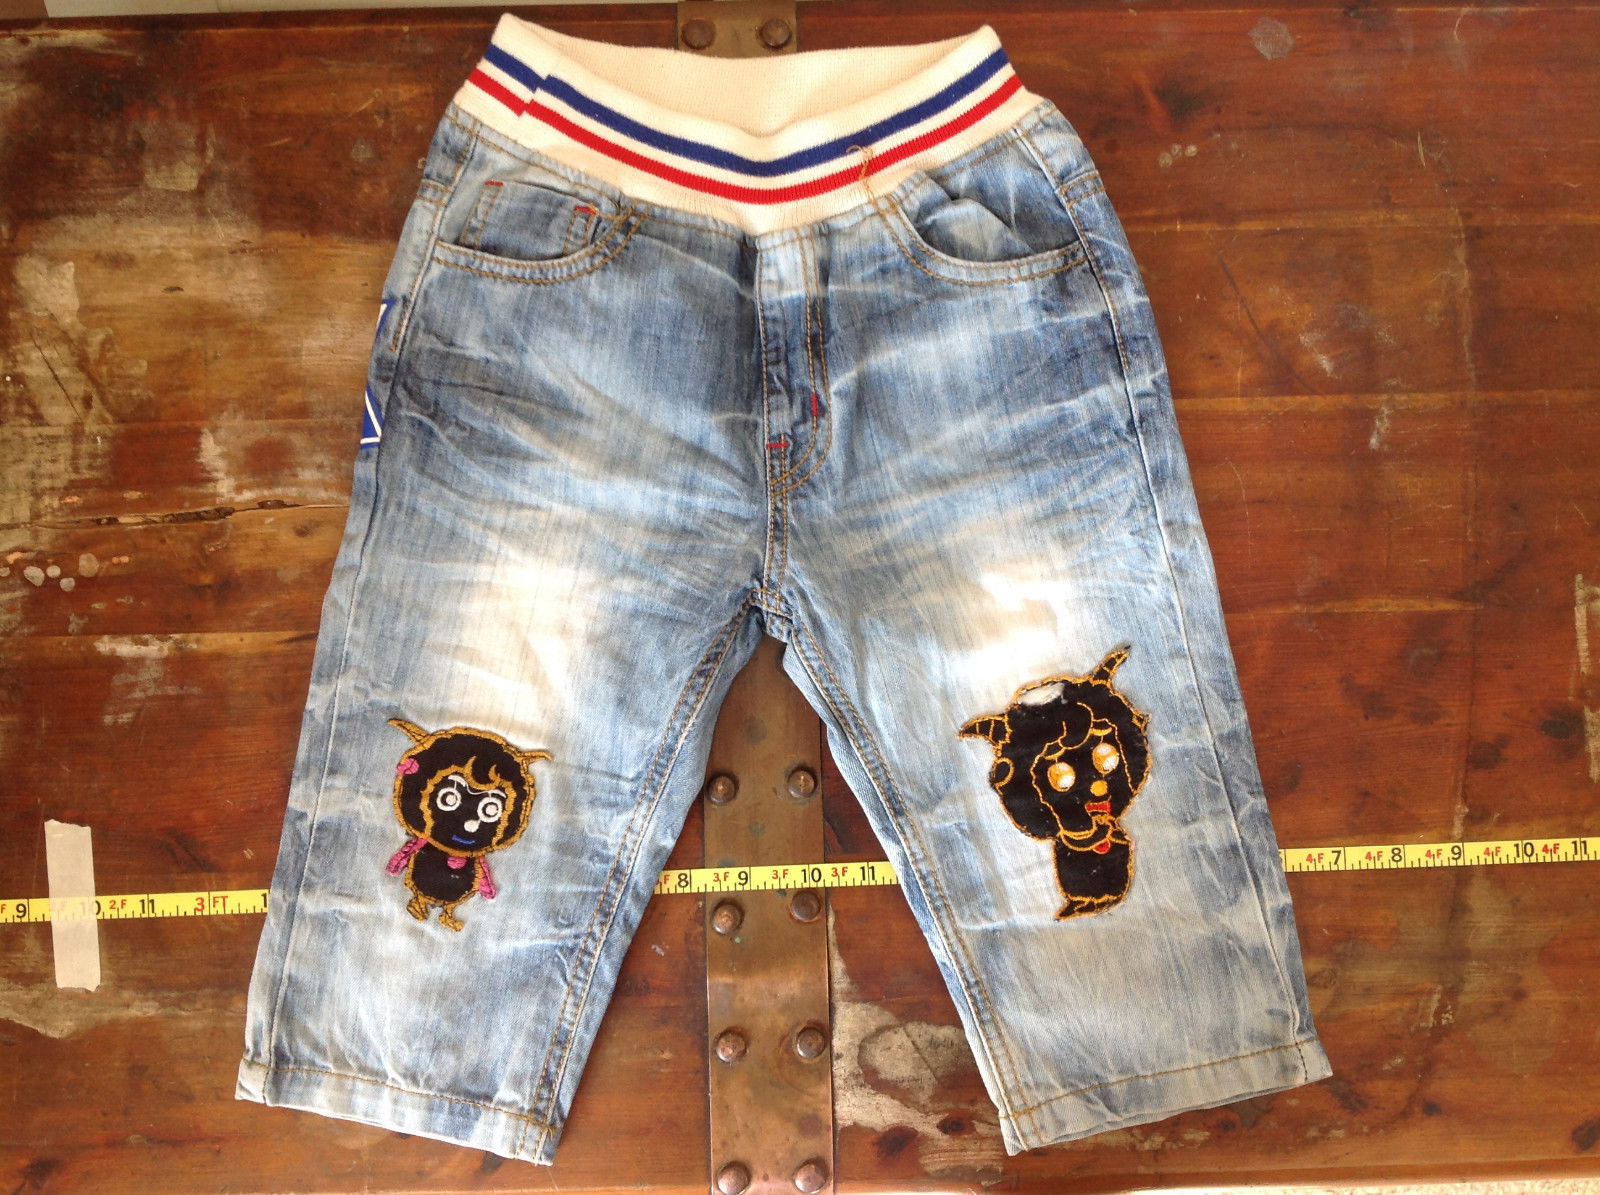 Infant Soft Stretch Waistband Jeans with Designs Pictures Front and Back NO TAGS